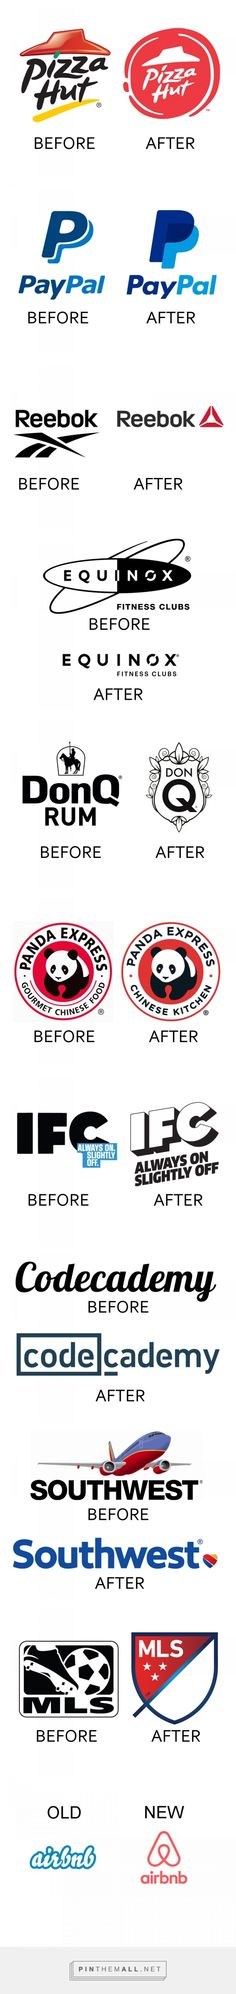 The 10 Best Corporate Logo Changes Of 2014